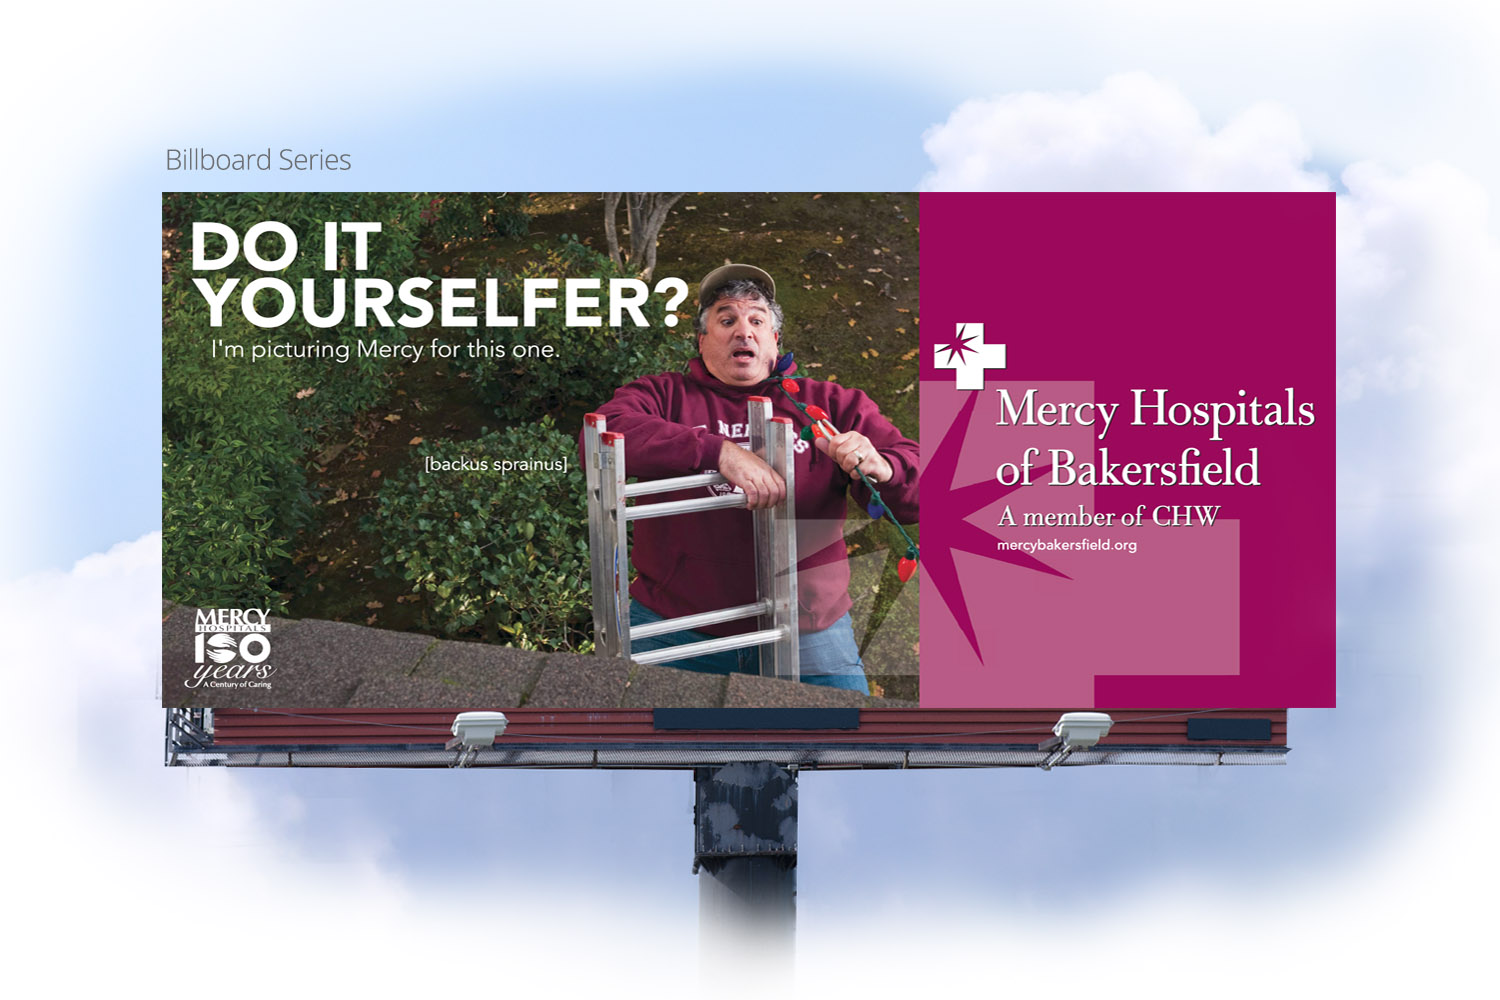 Mercy ER billboard campaign by DMI Agency, Visalia, CA - Do It Yourselfer